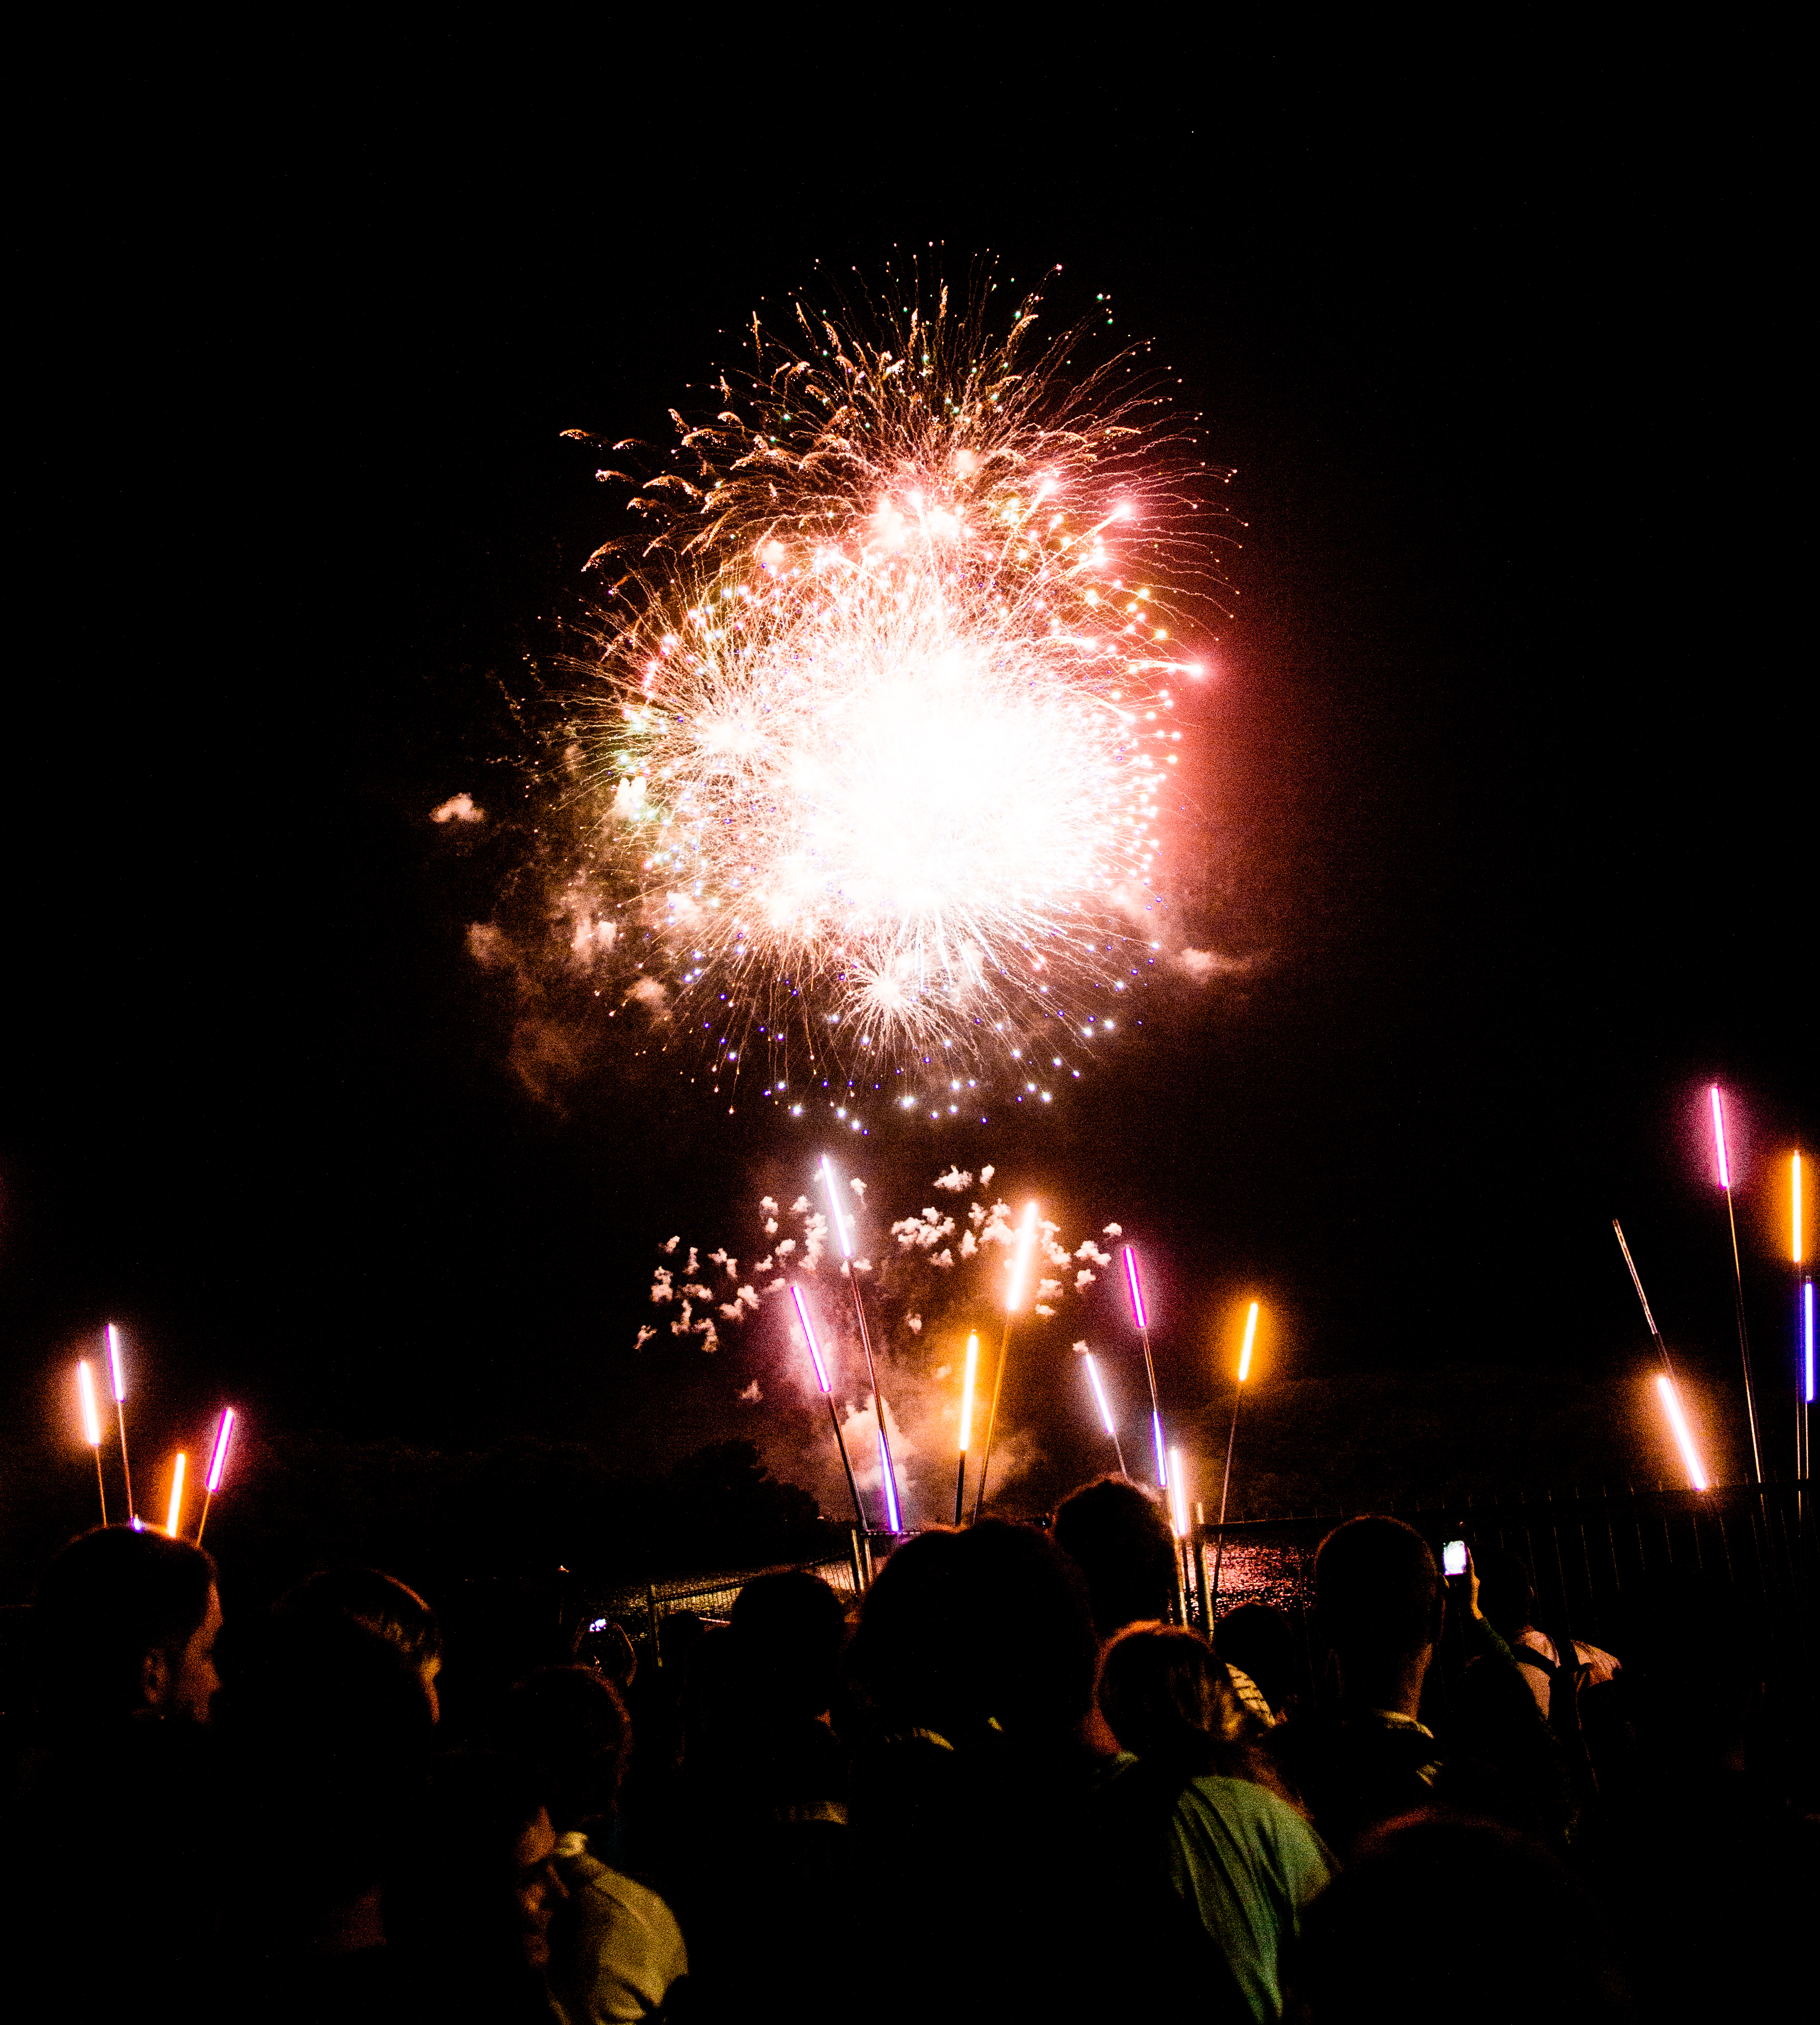 fireworks policy in the european union wikipedia